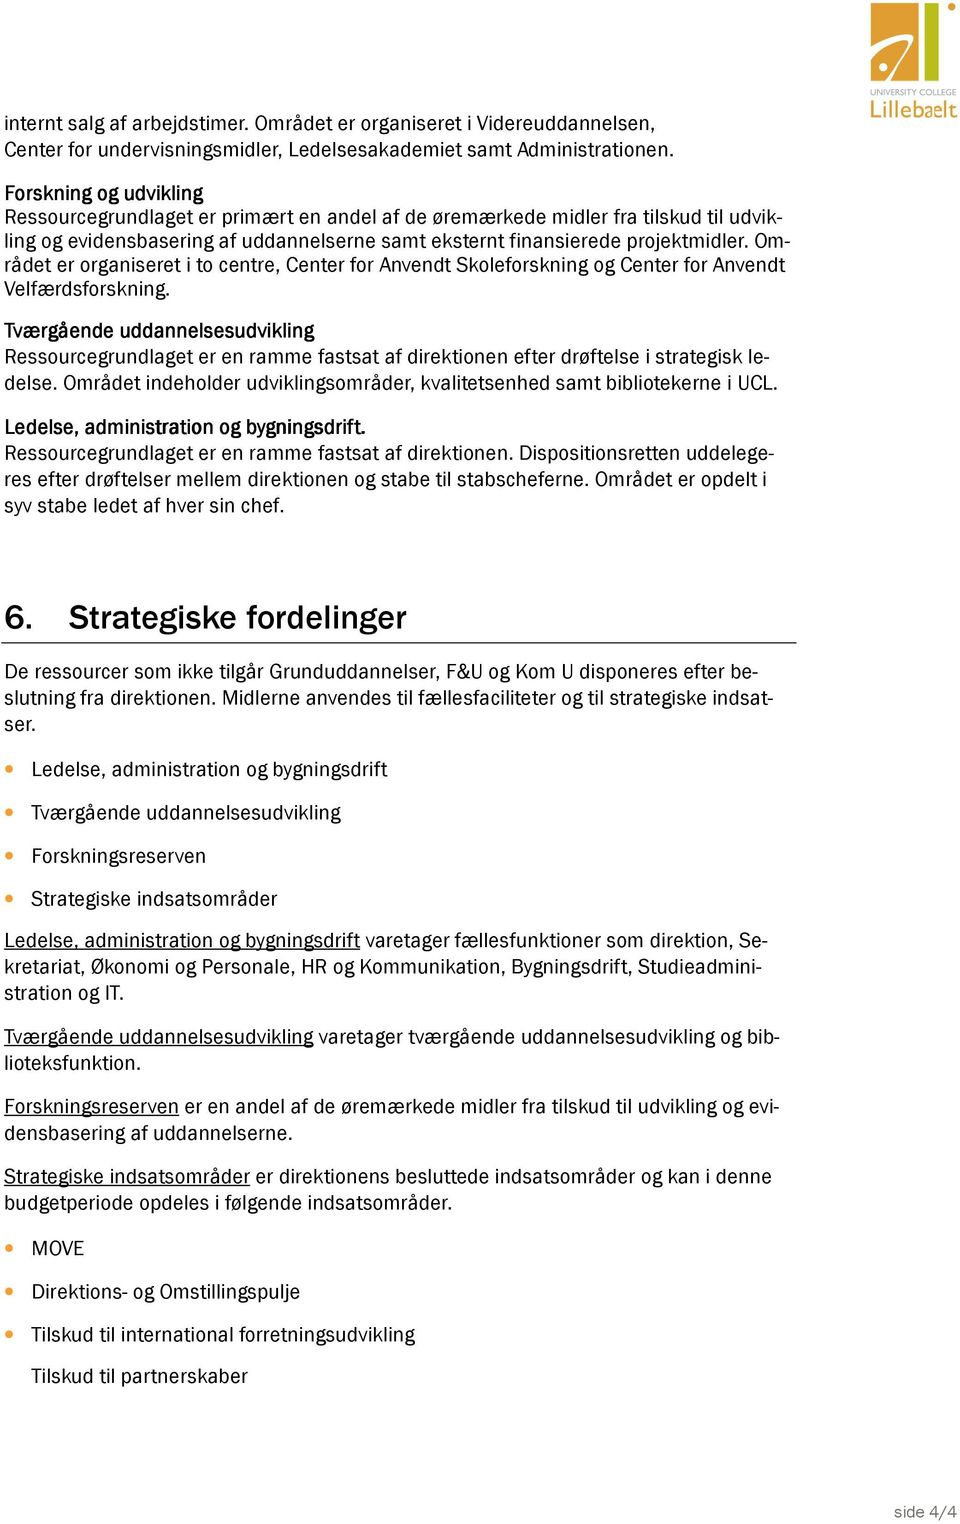 Området er organiseret i to centre, Center for Anvendt Skoleforskning og Center for Anvendt Velfærdsforskning.